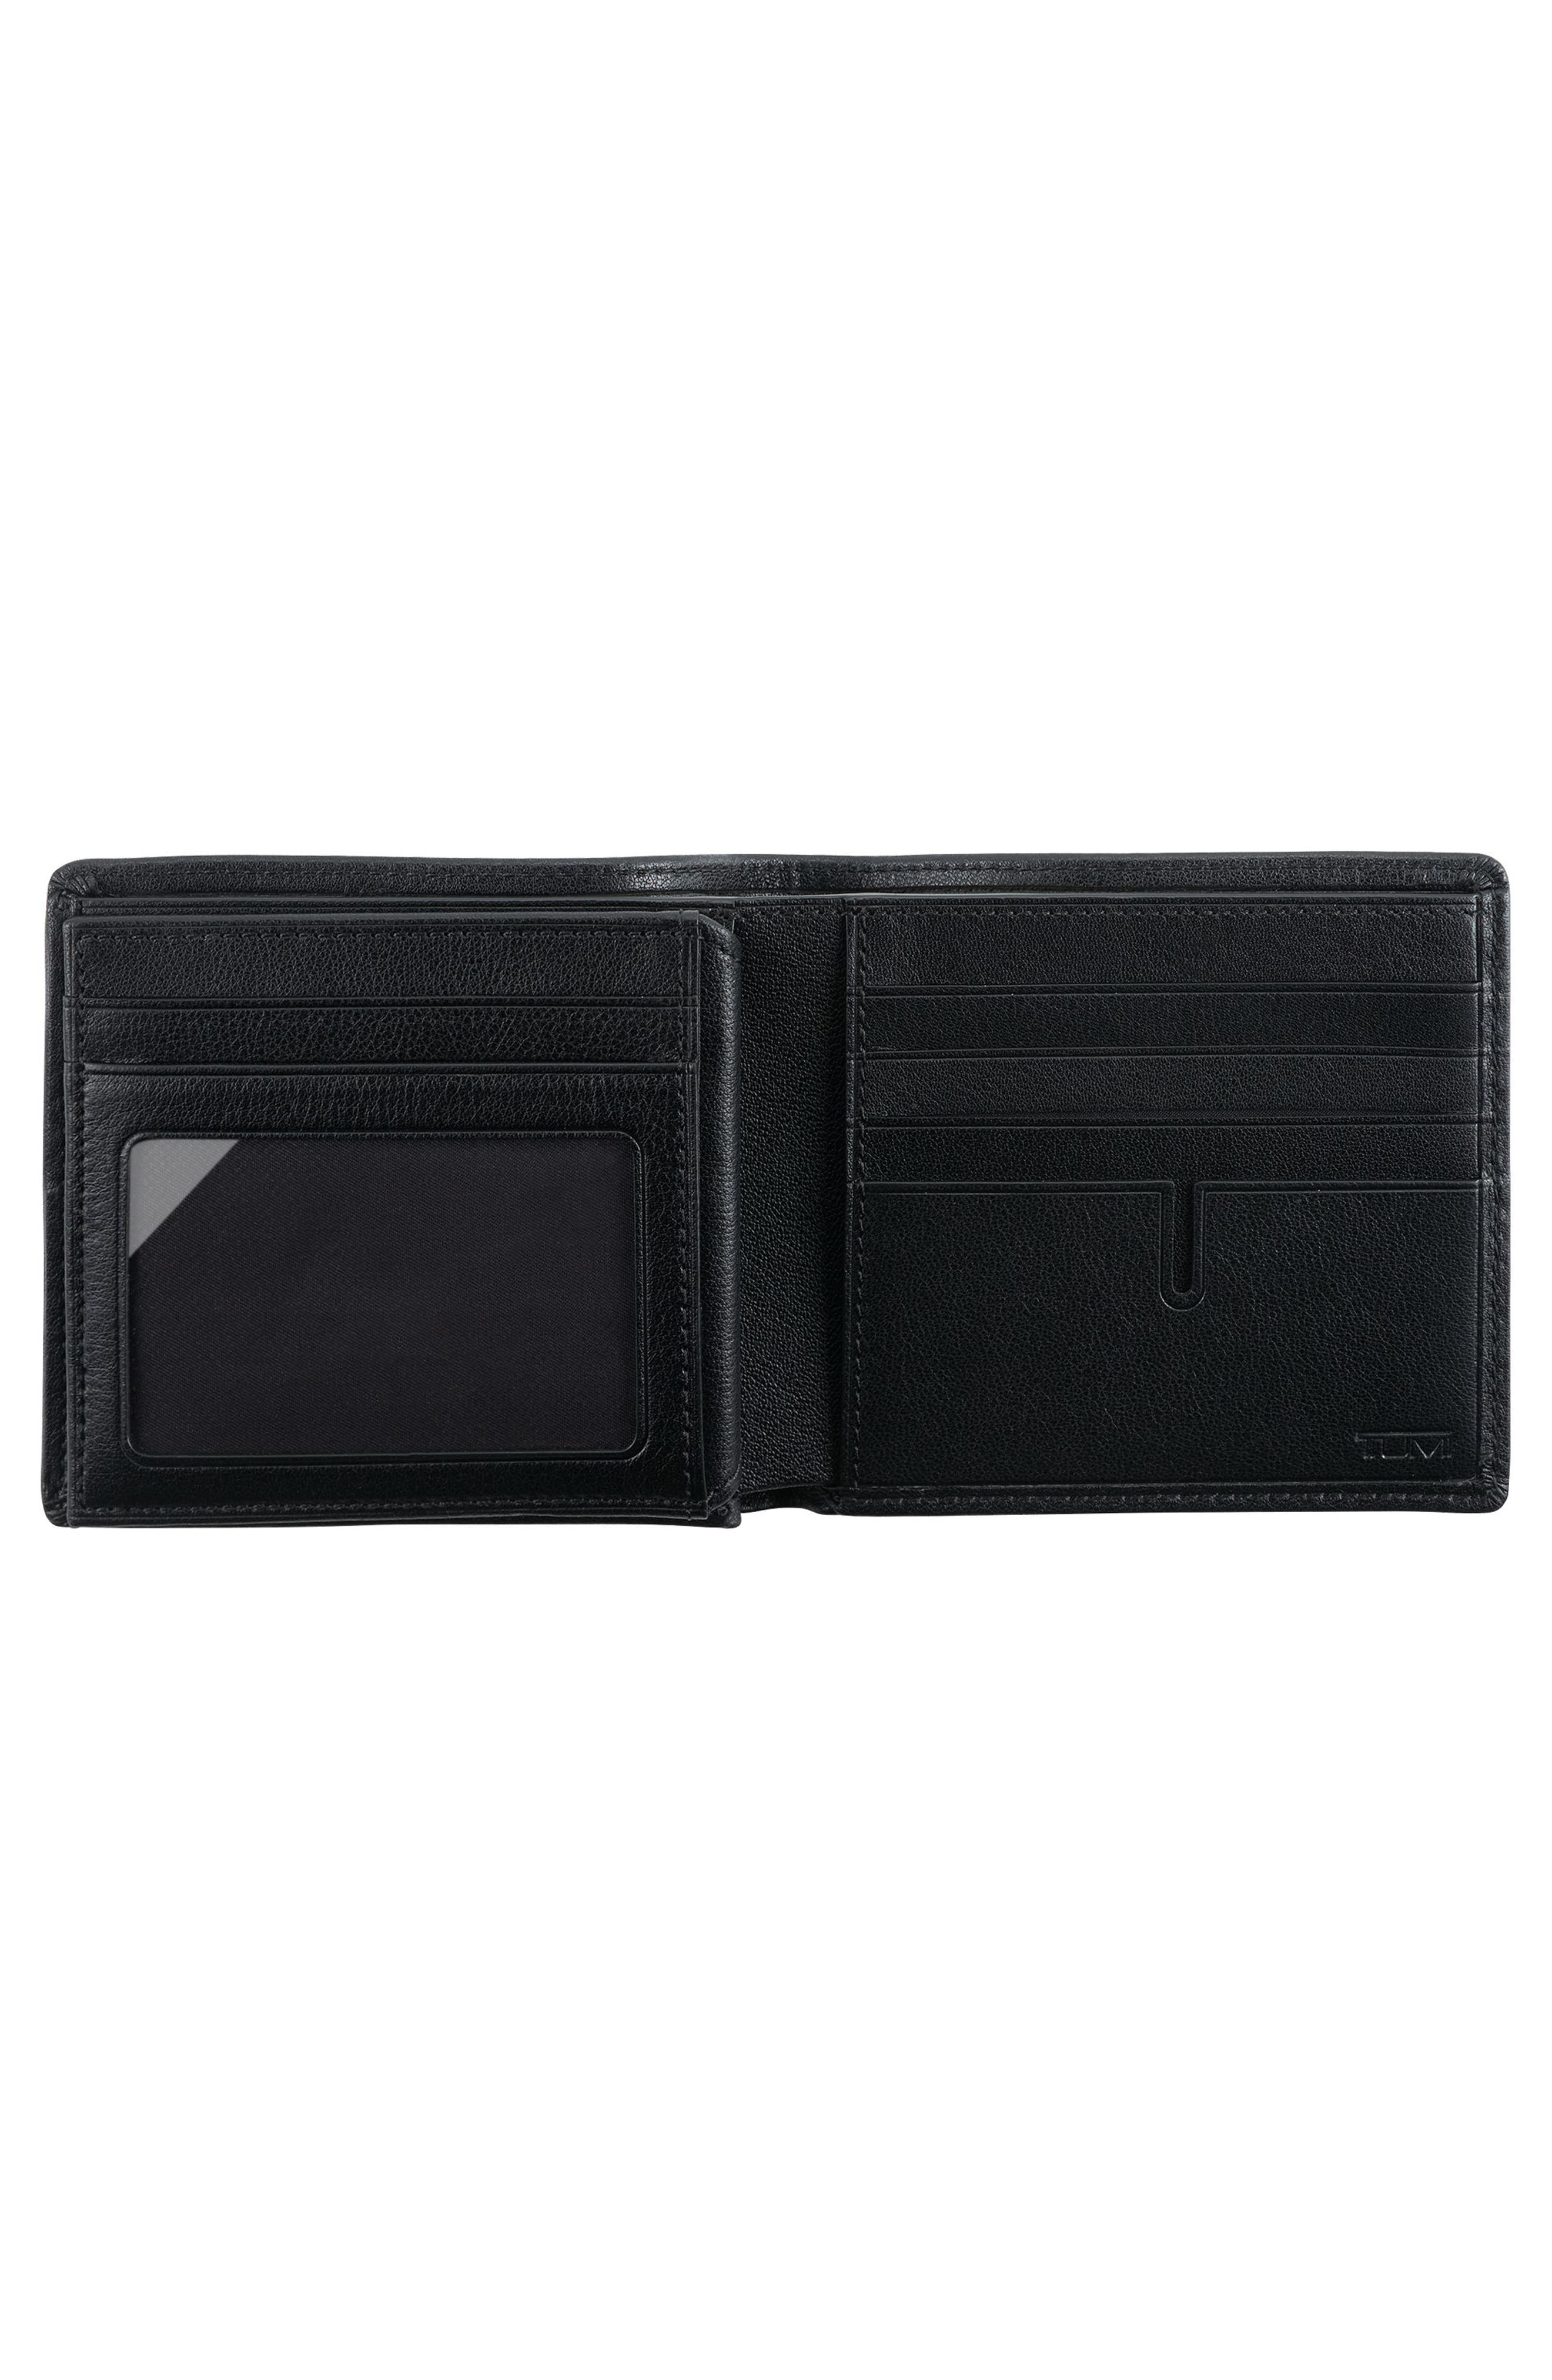 Alternate Image 2  - Tumi Global Leather Passcase Wallet